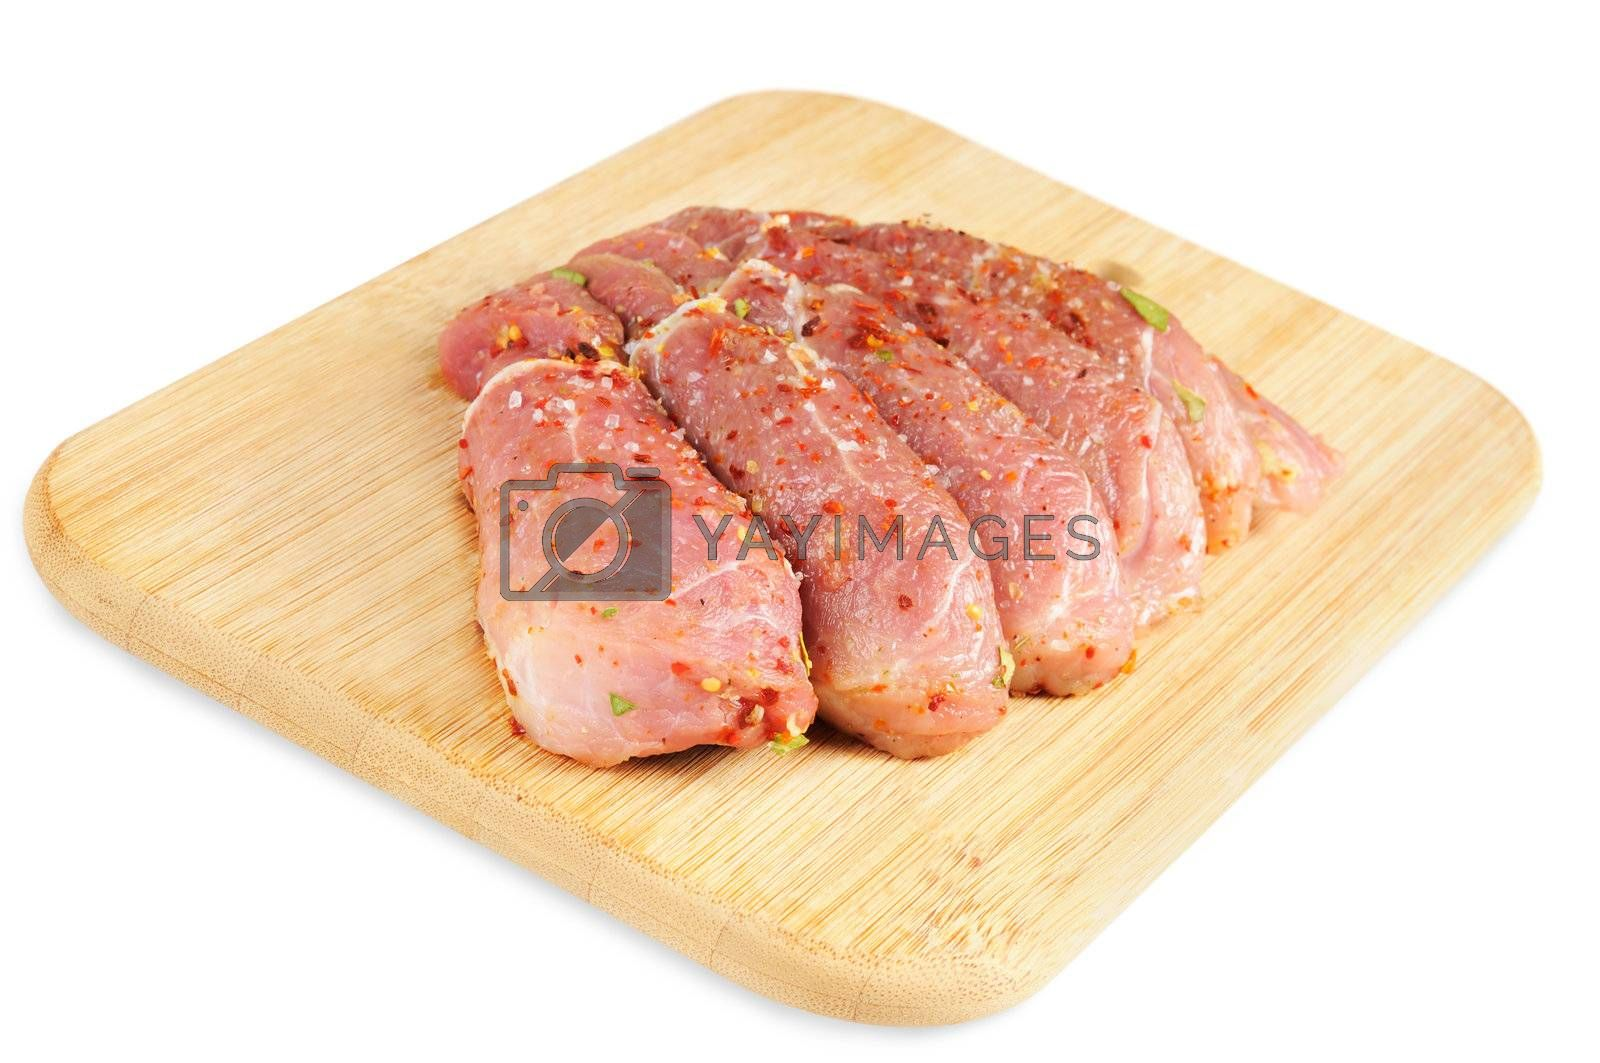 Raw meat, with spices on wooden board. Isolated on white.